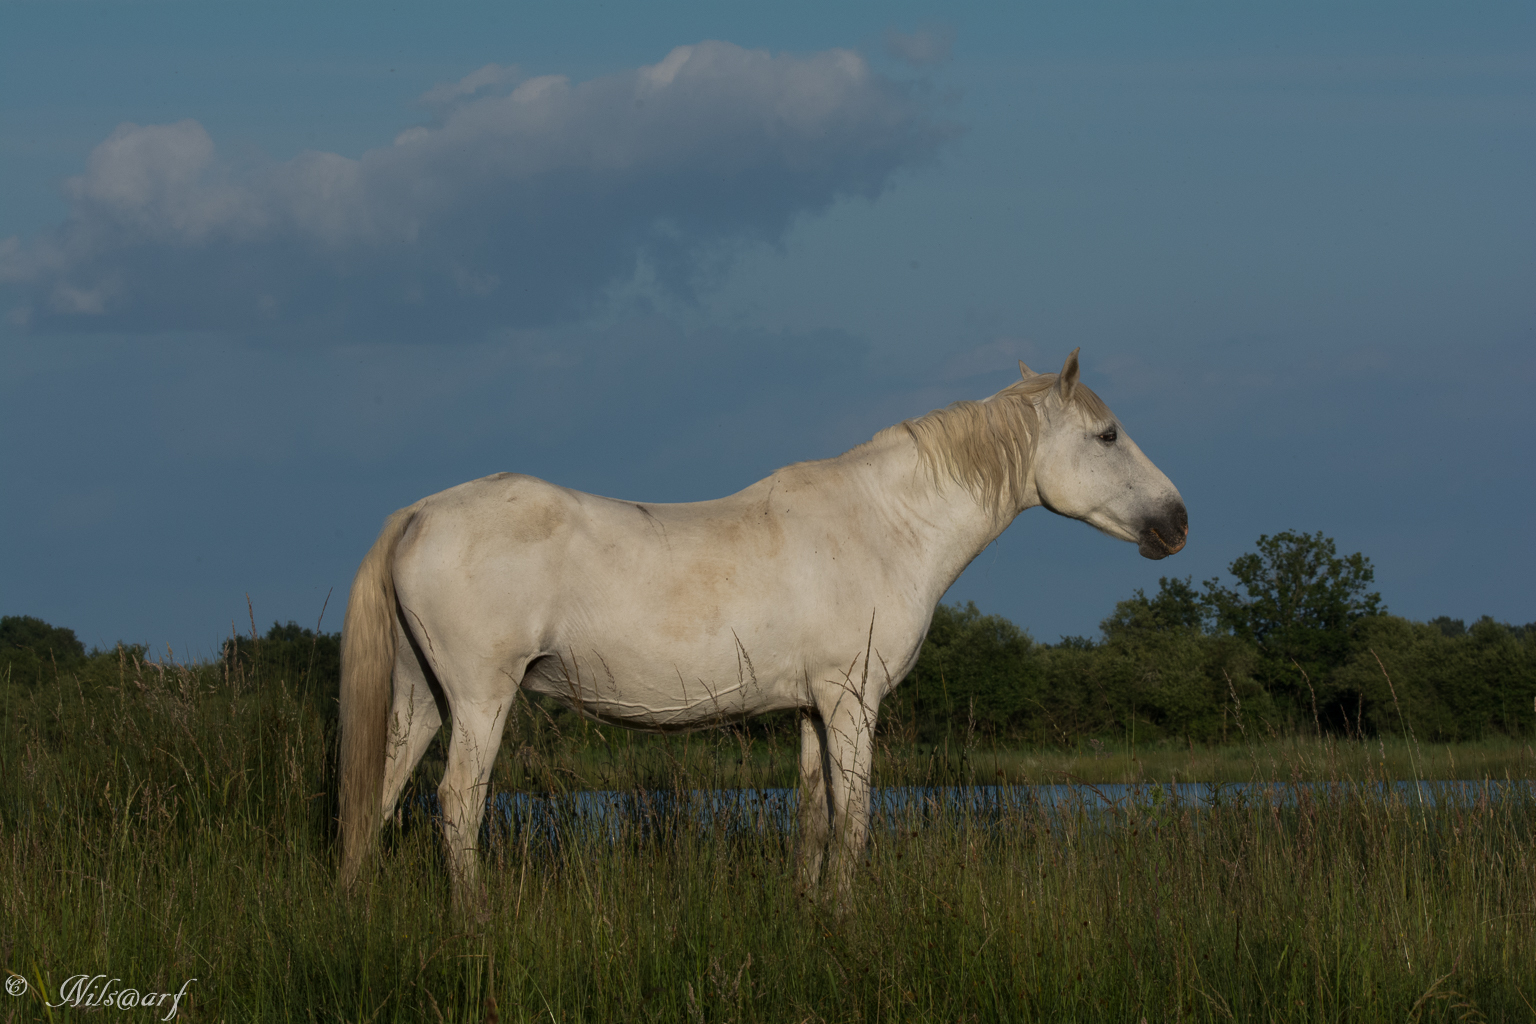 [Fil - Ouvert ] Chevaux - Page 6 834666labrenne20161021